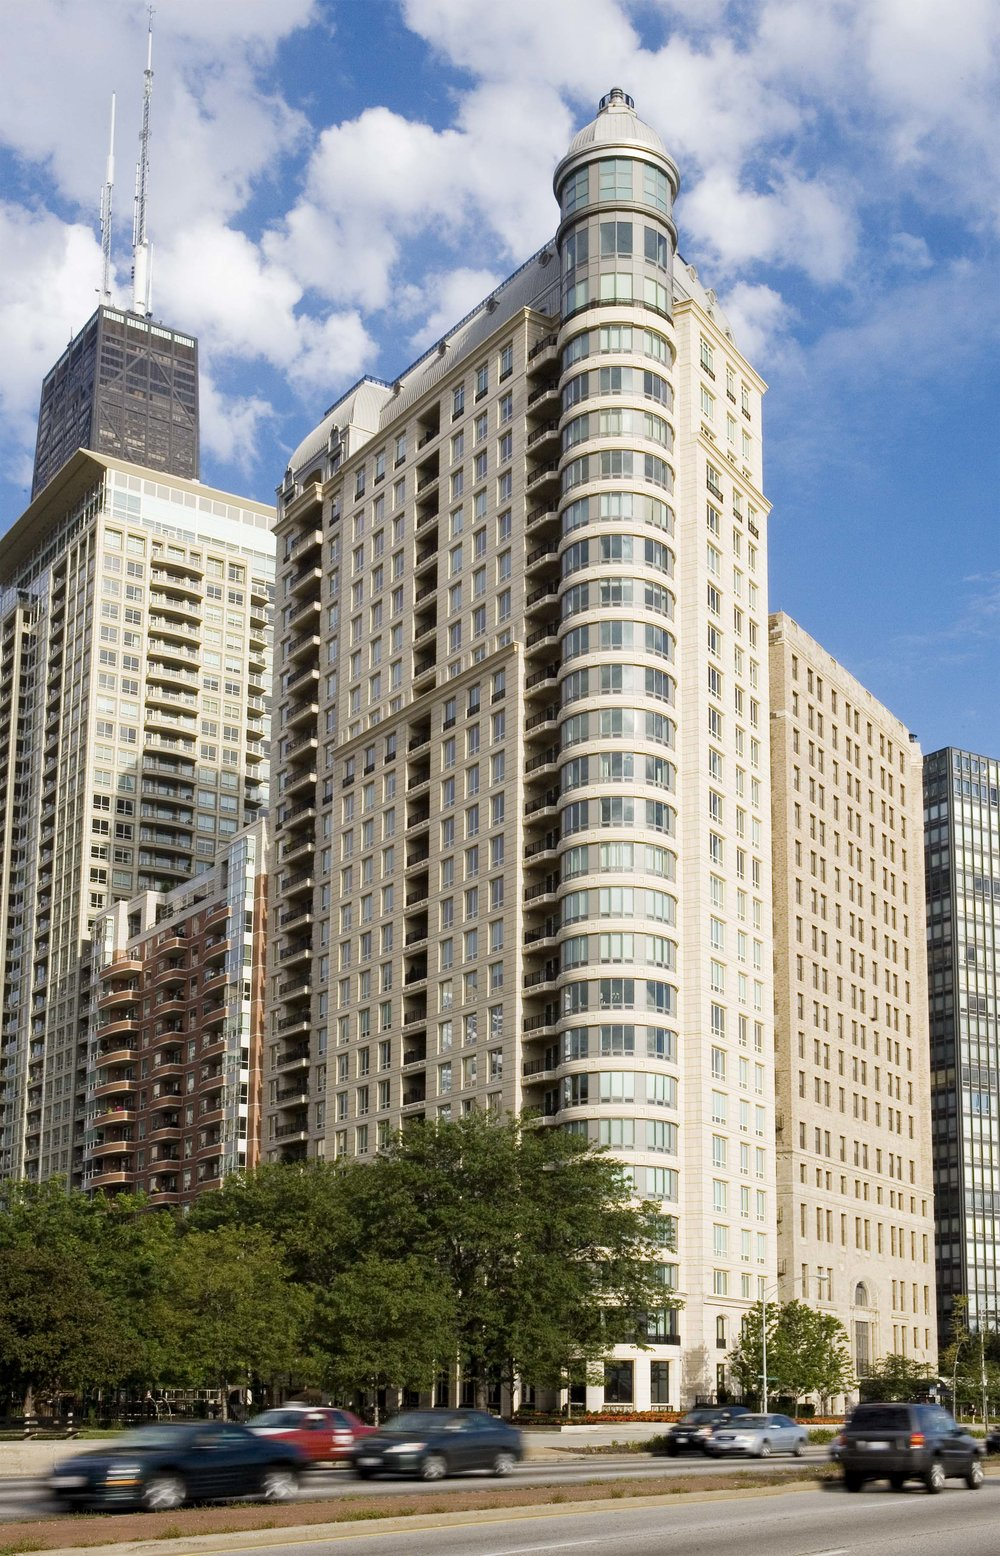 840 North Lake Shore Drive    840 North Lake Shore Drive  Chicago, Illinois